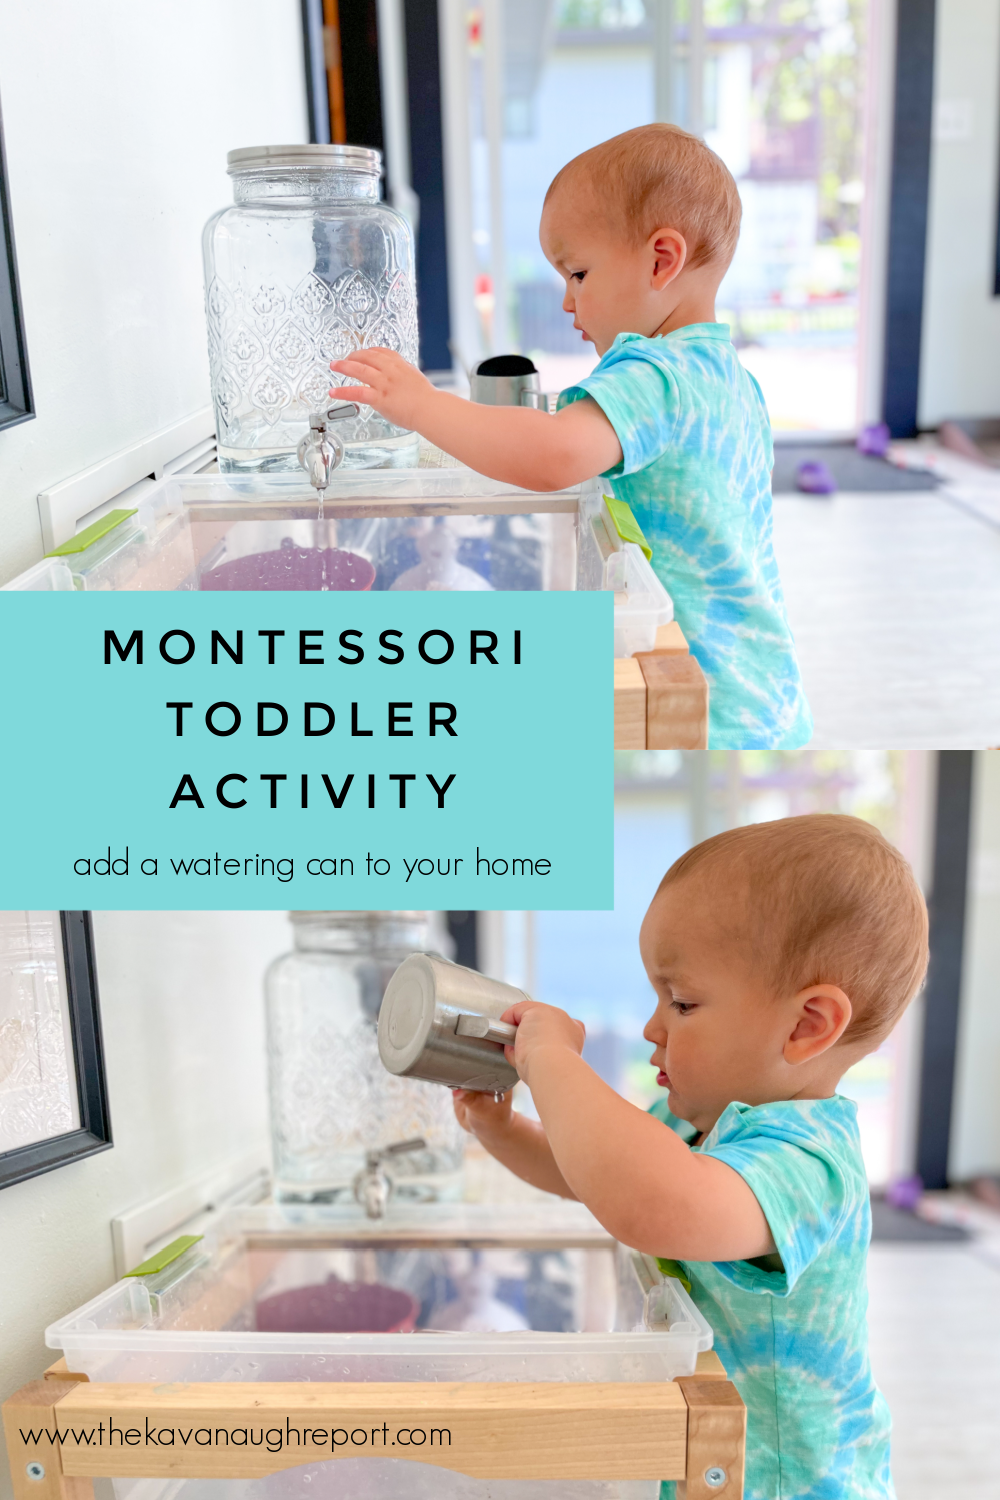 Adding a tiny watering can to your home is a fun and easy Montessori toddler activity.